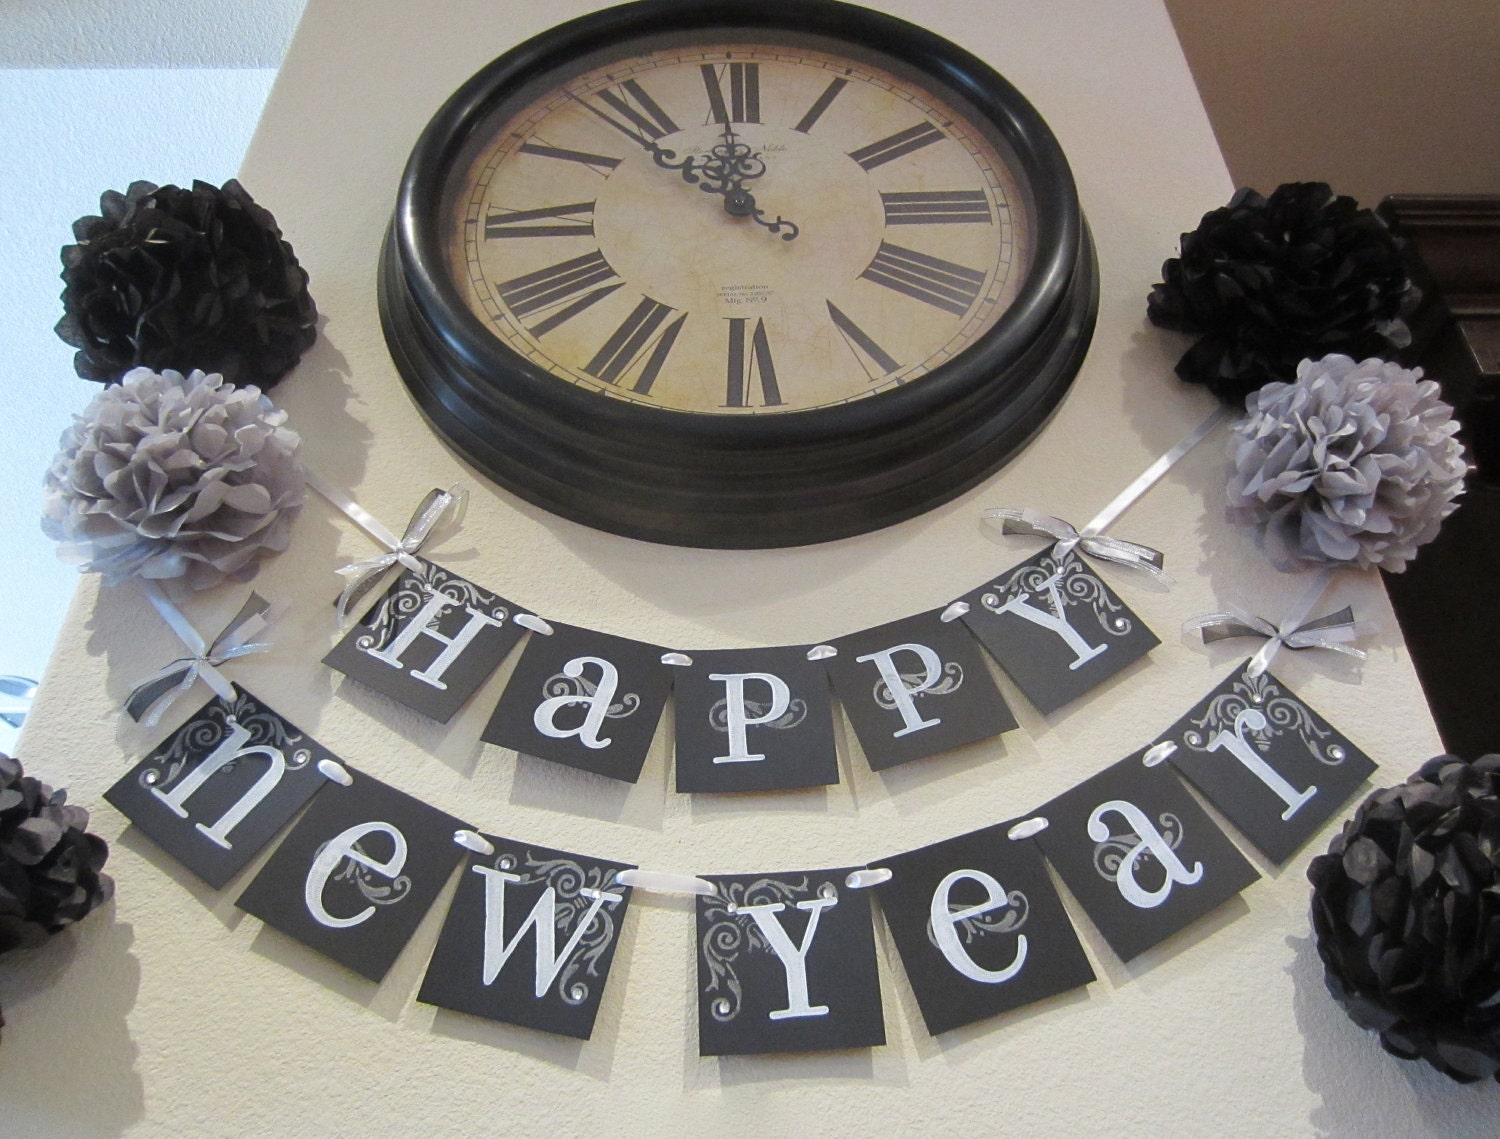 Happy New Year 2012 banner garland decoration wall hanging black and white